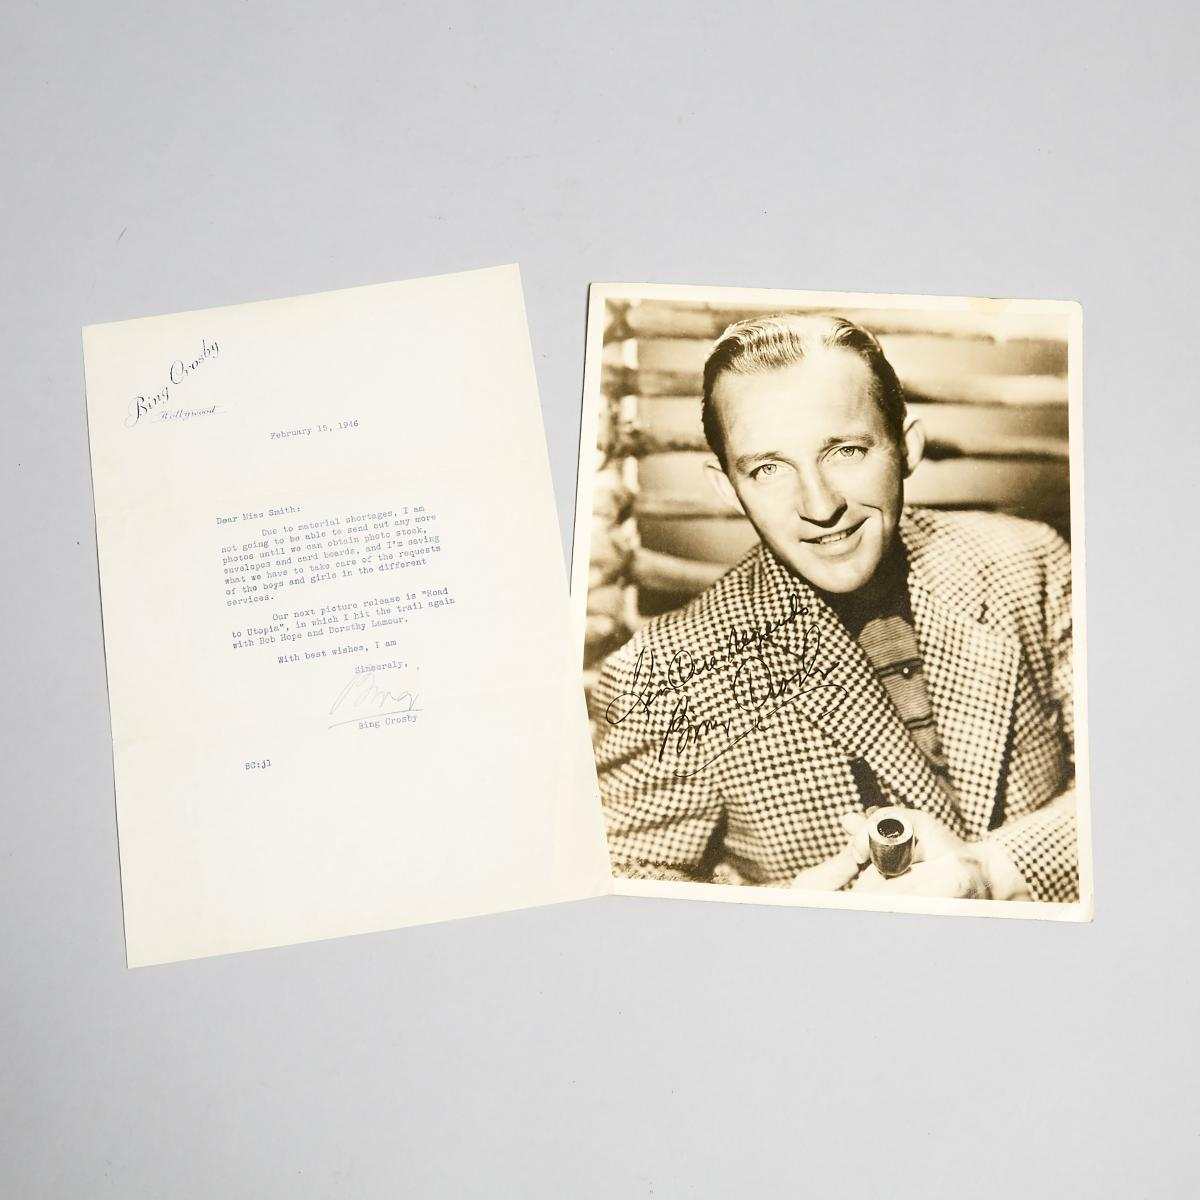 Lot 99 - Bing Crosby Autograph Letter, 1946, letter 10.5 x 7.25 in — 26.7 x 18.4 cm (2 Pieces)